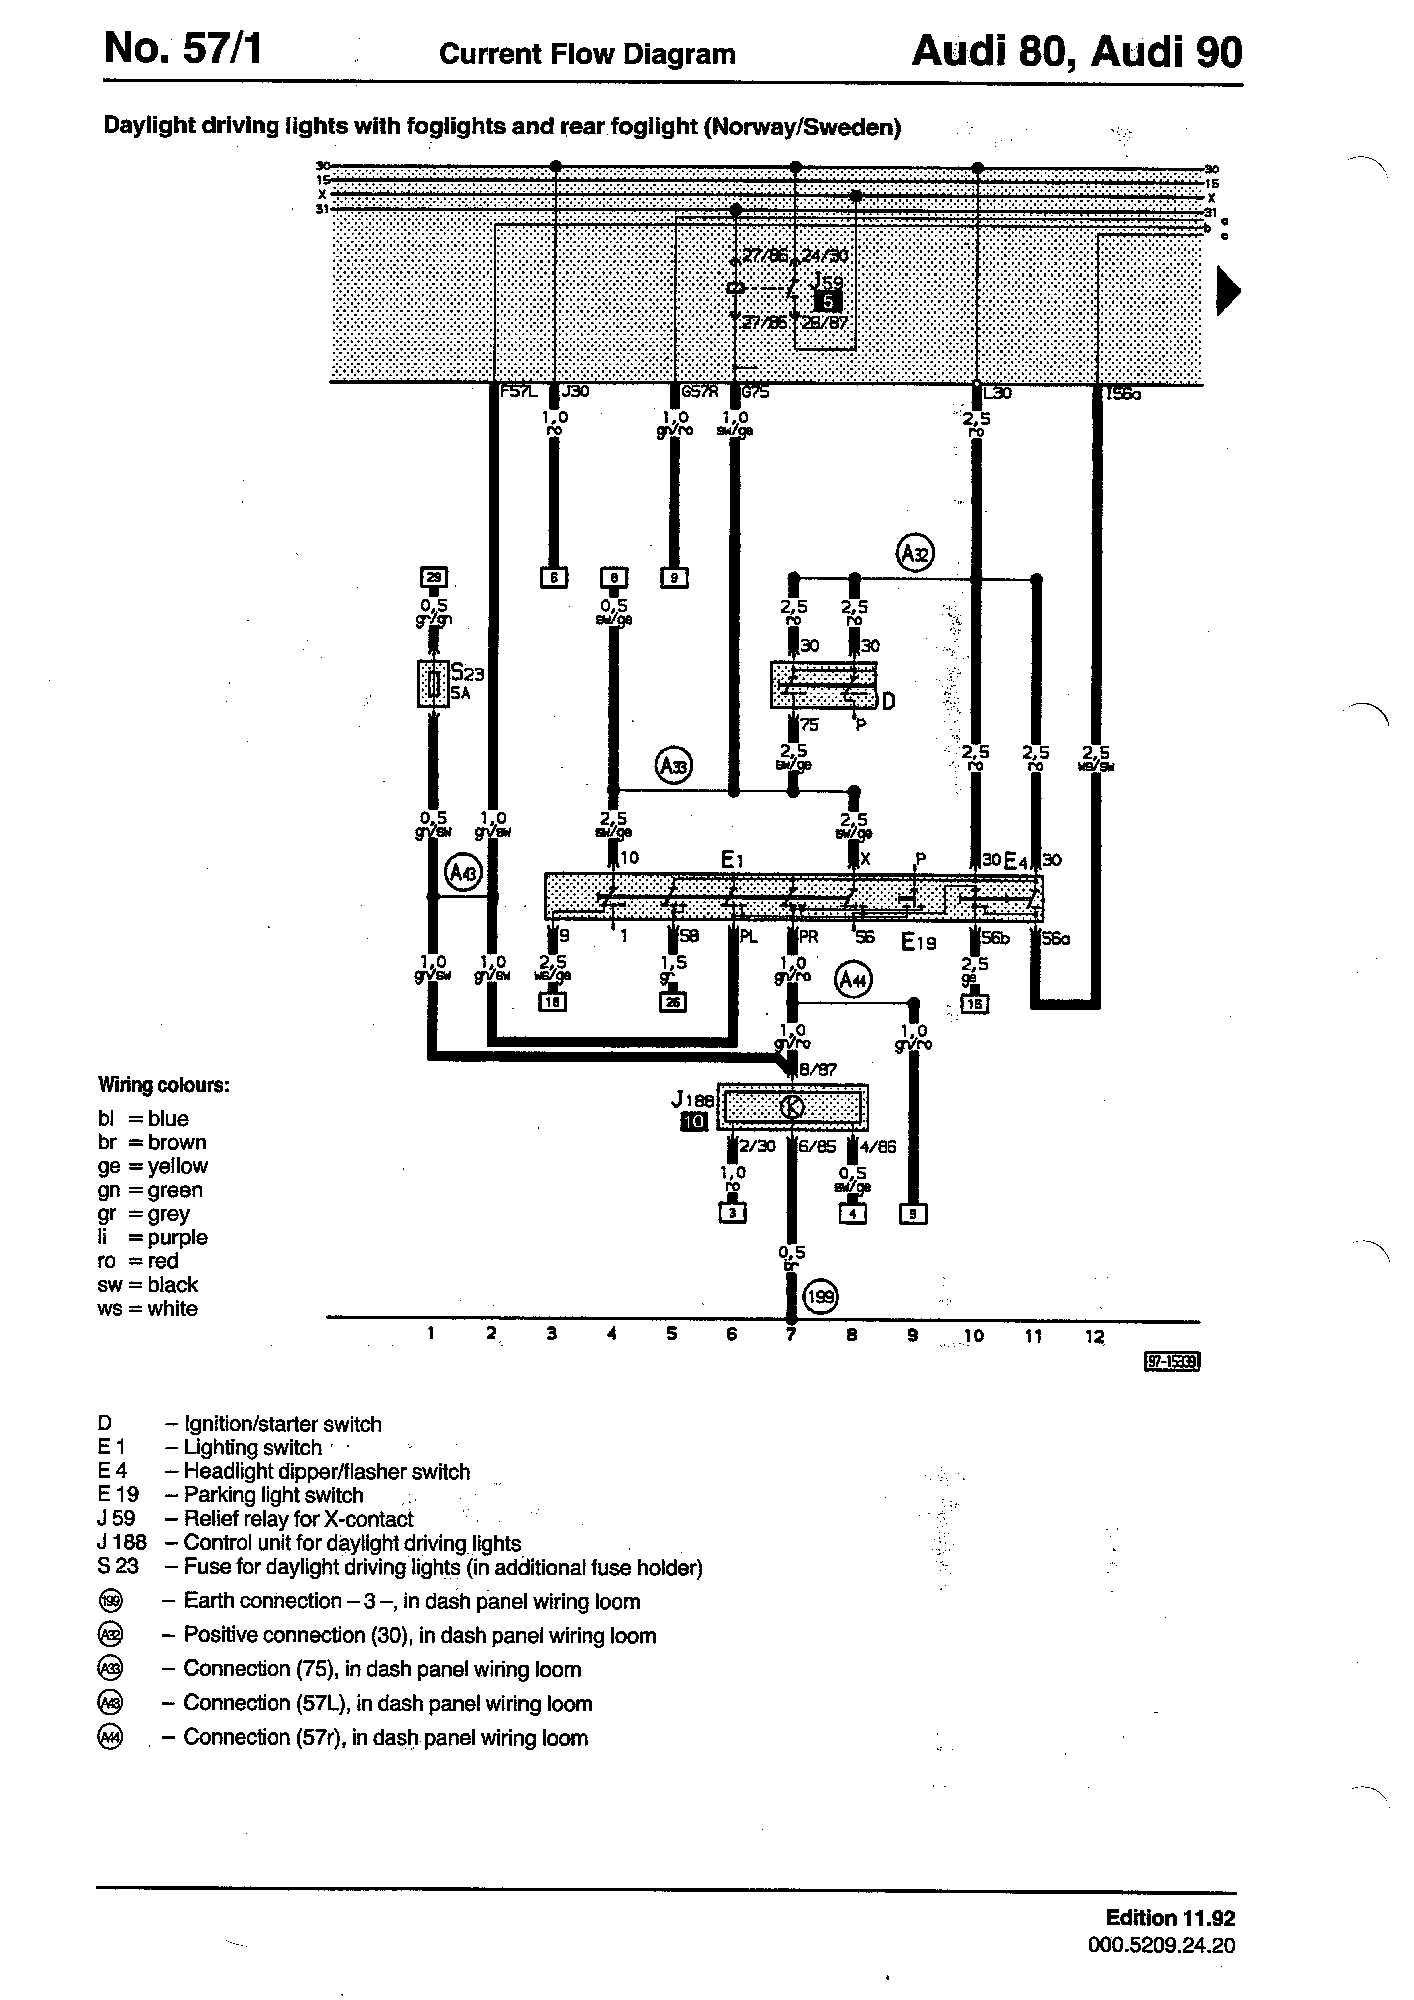 S2 Wiring Panel Circuit Diagram Schema Service Diagrams Component Lookup Electrical Parking Light Switch E19